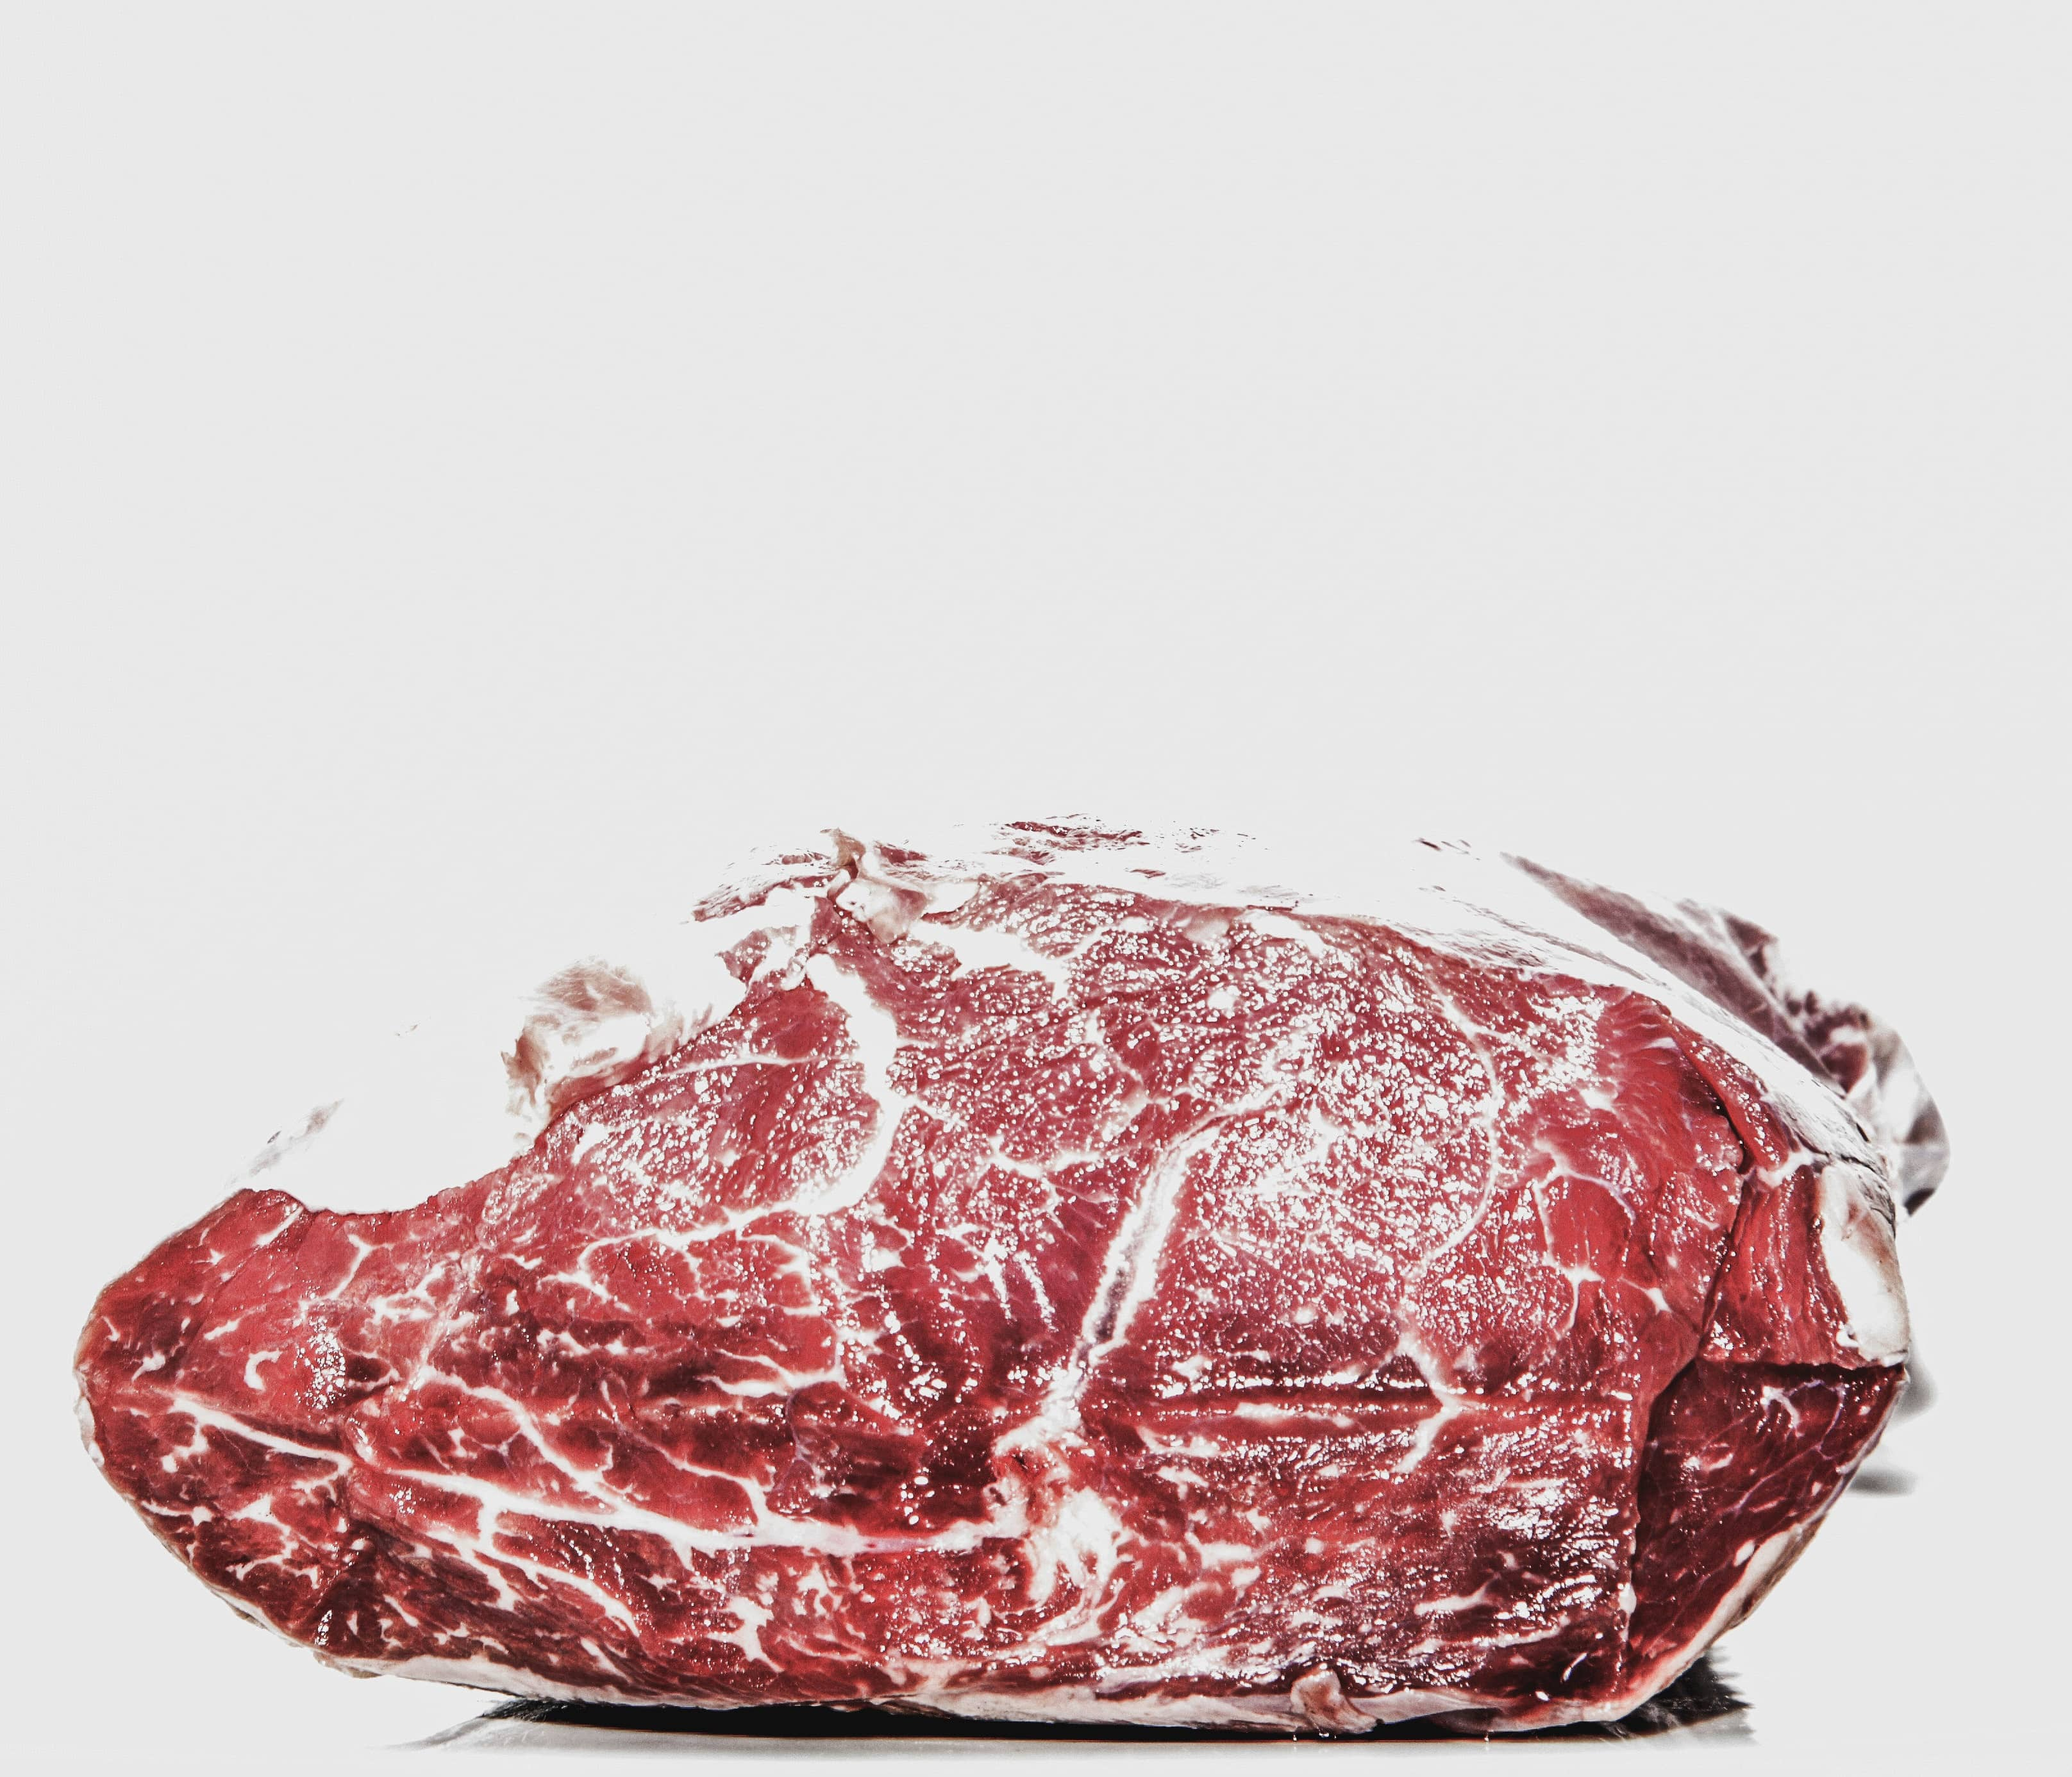 Pandemic-Led Meat Shortage Gives Faux Meat Companies Opportunity to Push Products